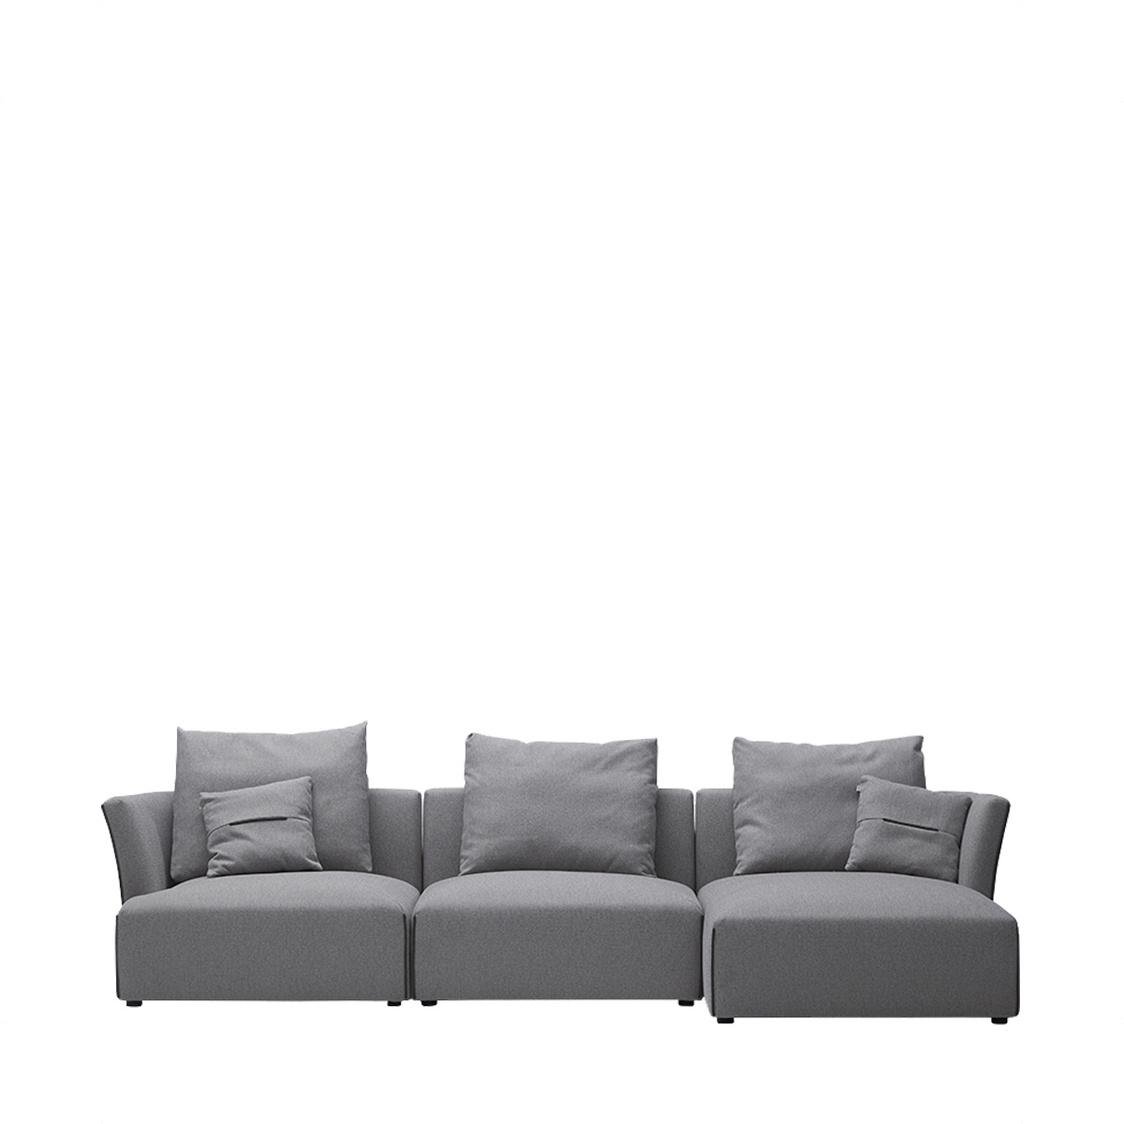 Bergen Couch Right Fabric HCS744CRF-2P1